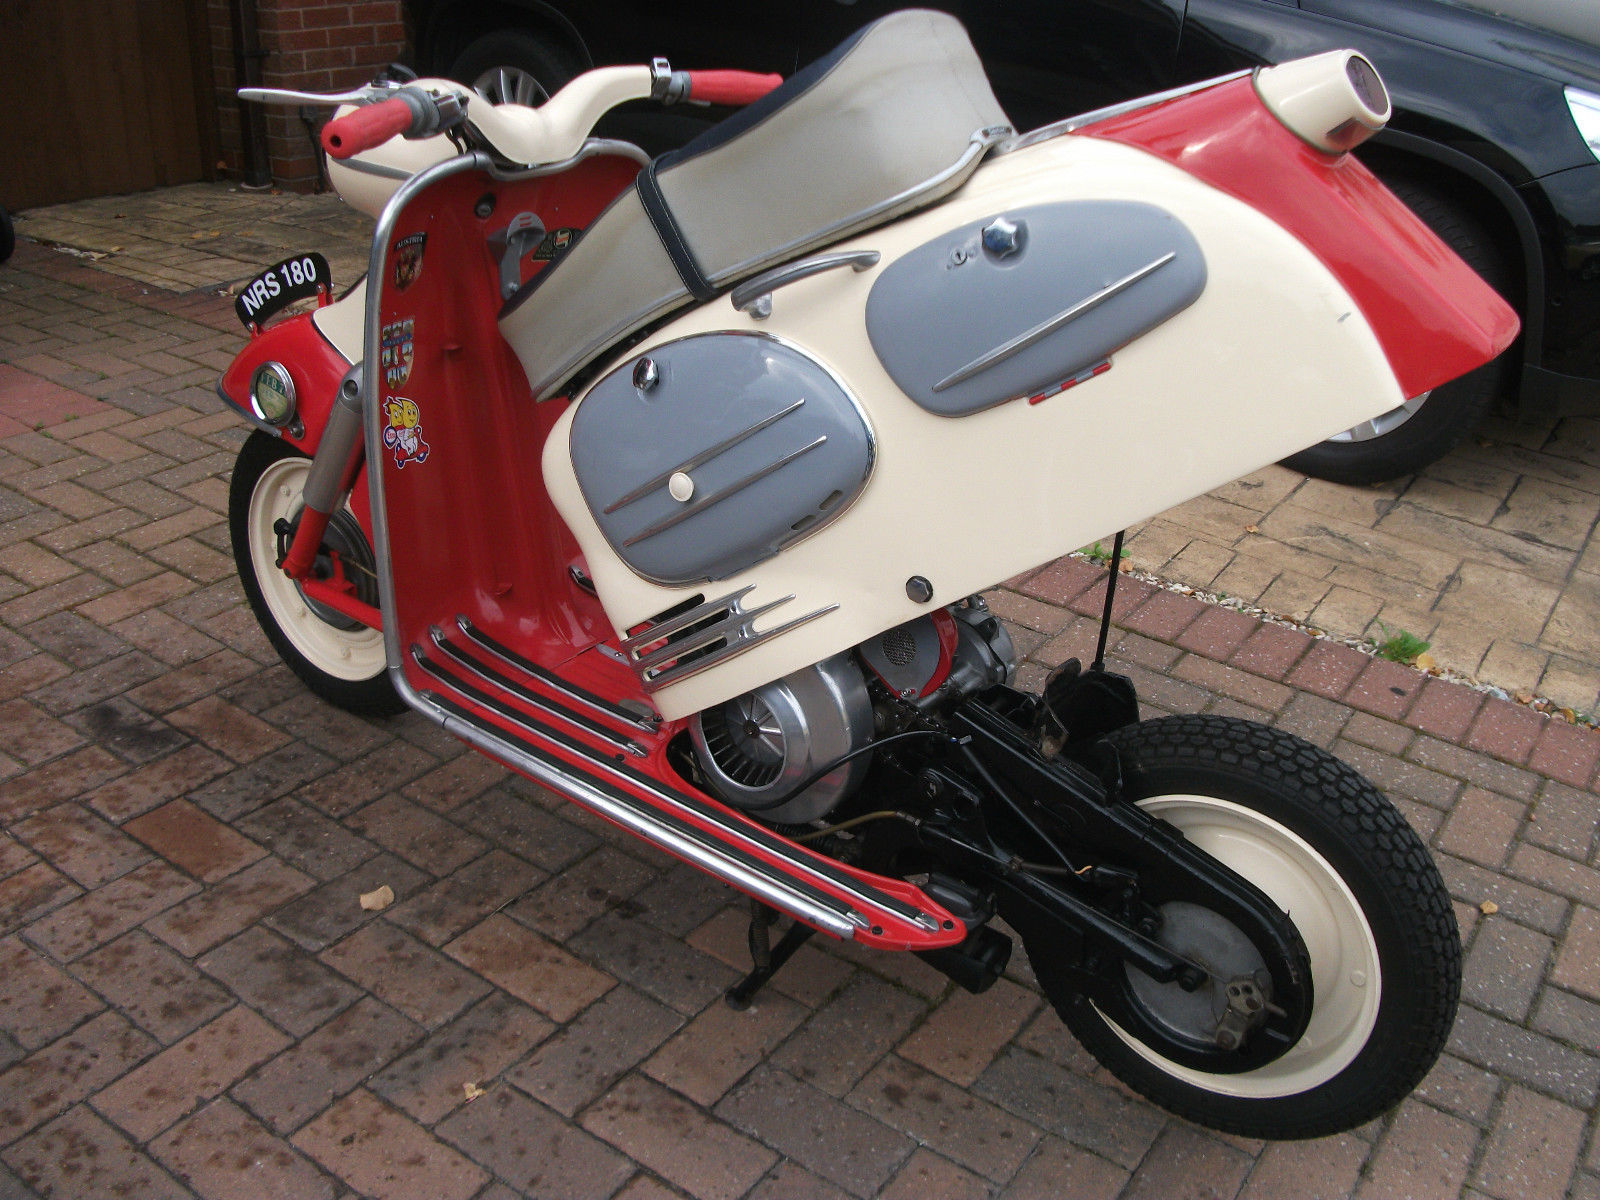 Vespa Gts250ie Wiring Diagram : Vespa engine and frame number location get free